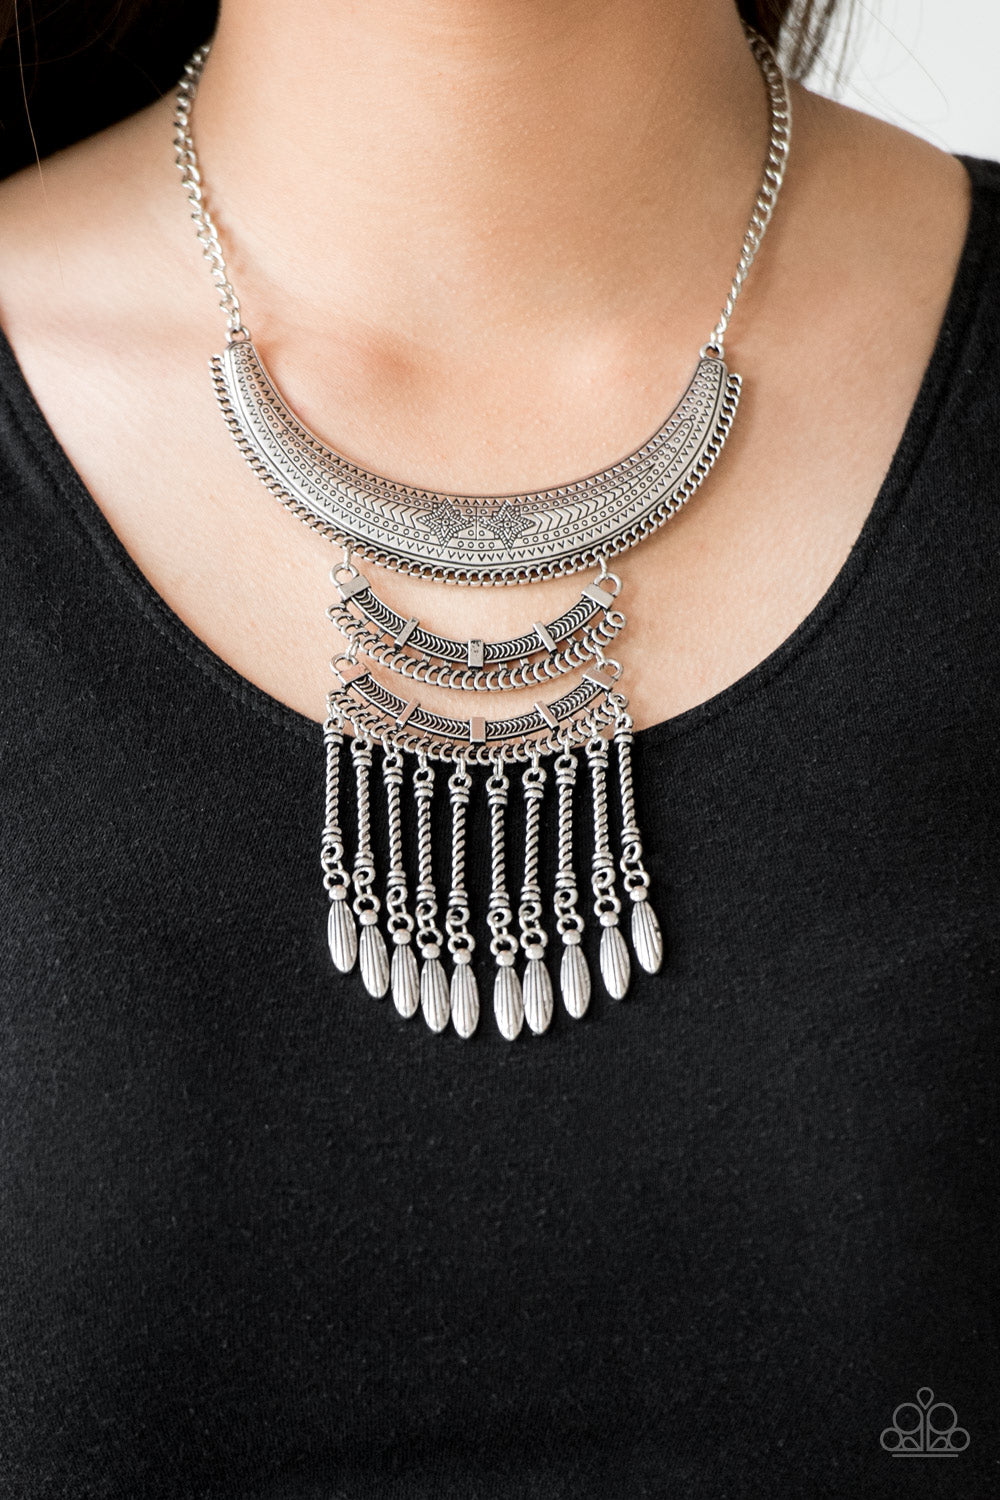 Paparazzi Accessories Eastern Empress - Silver Necklaces - Lady T Accessories